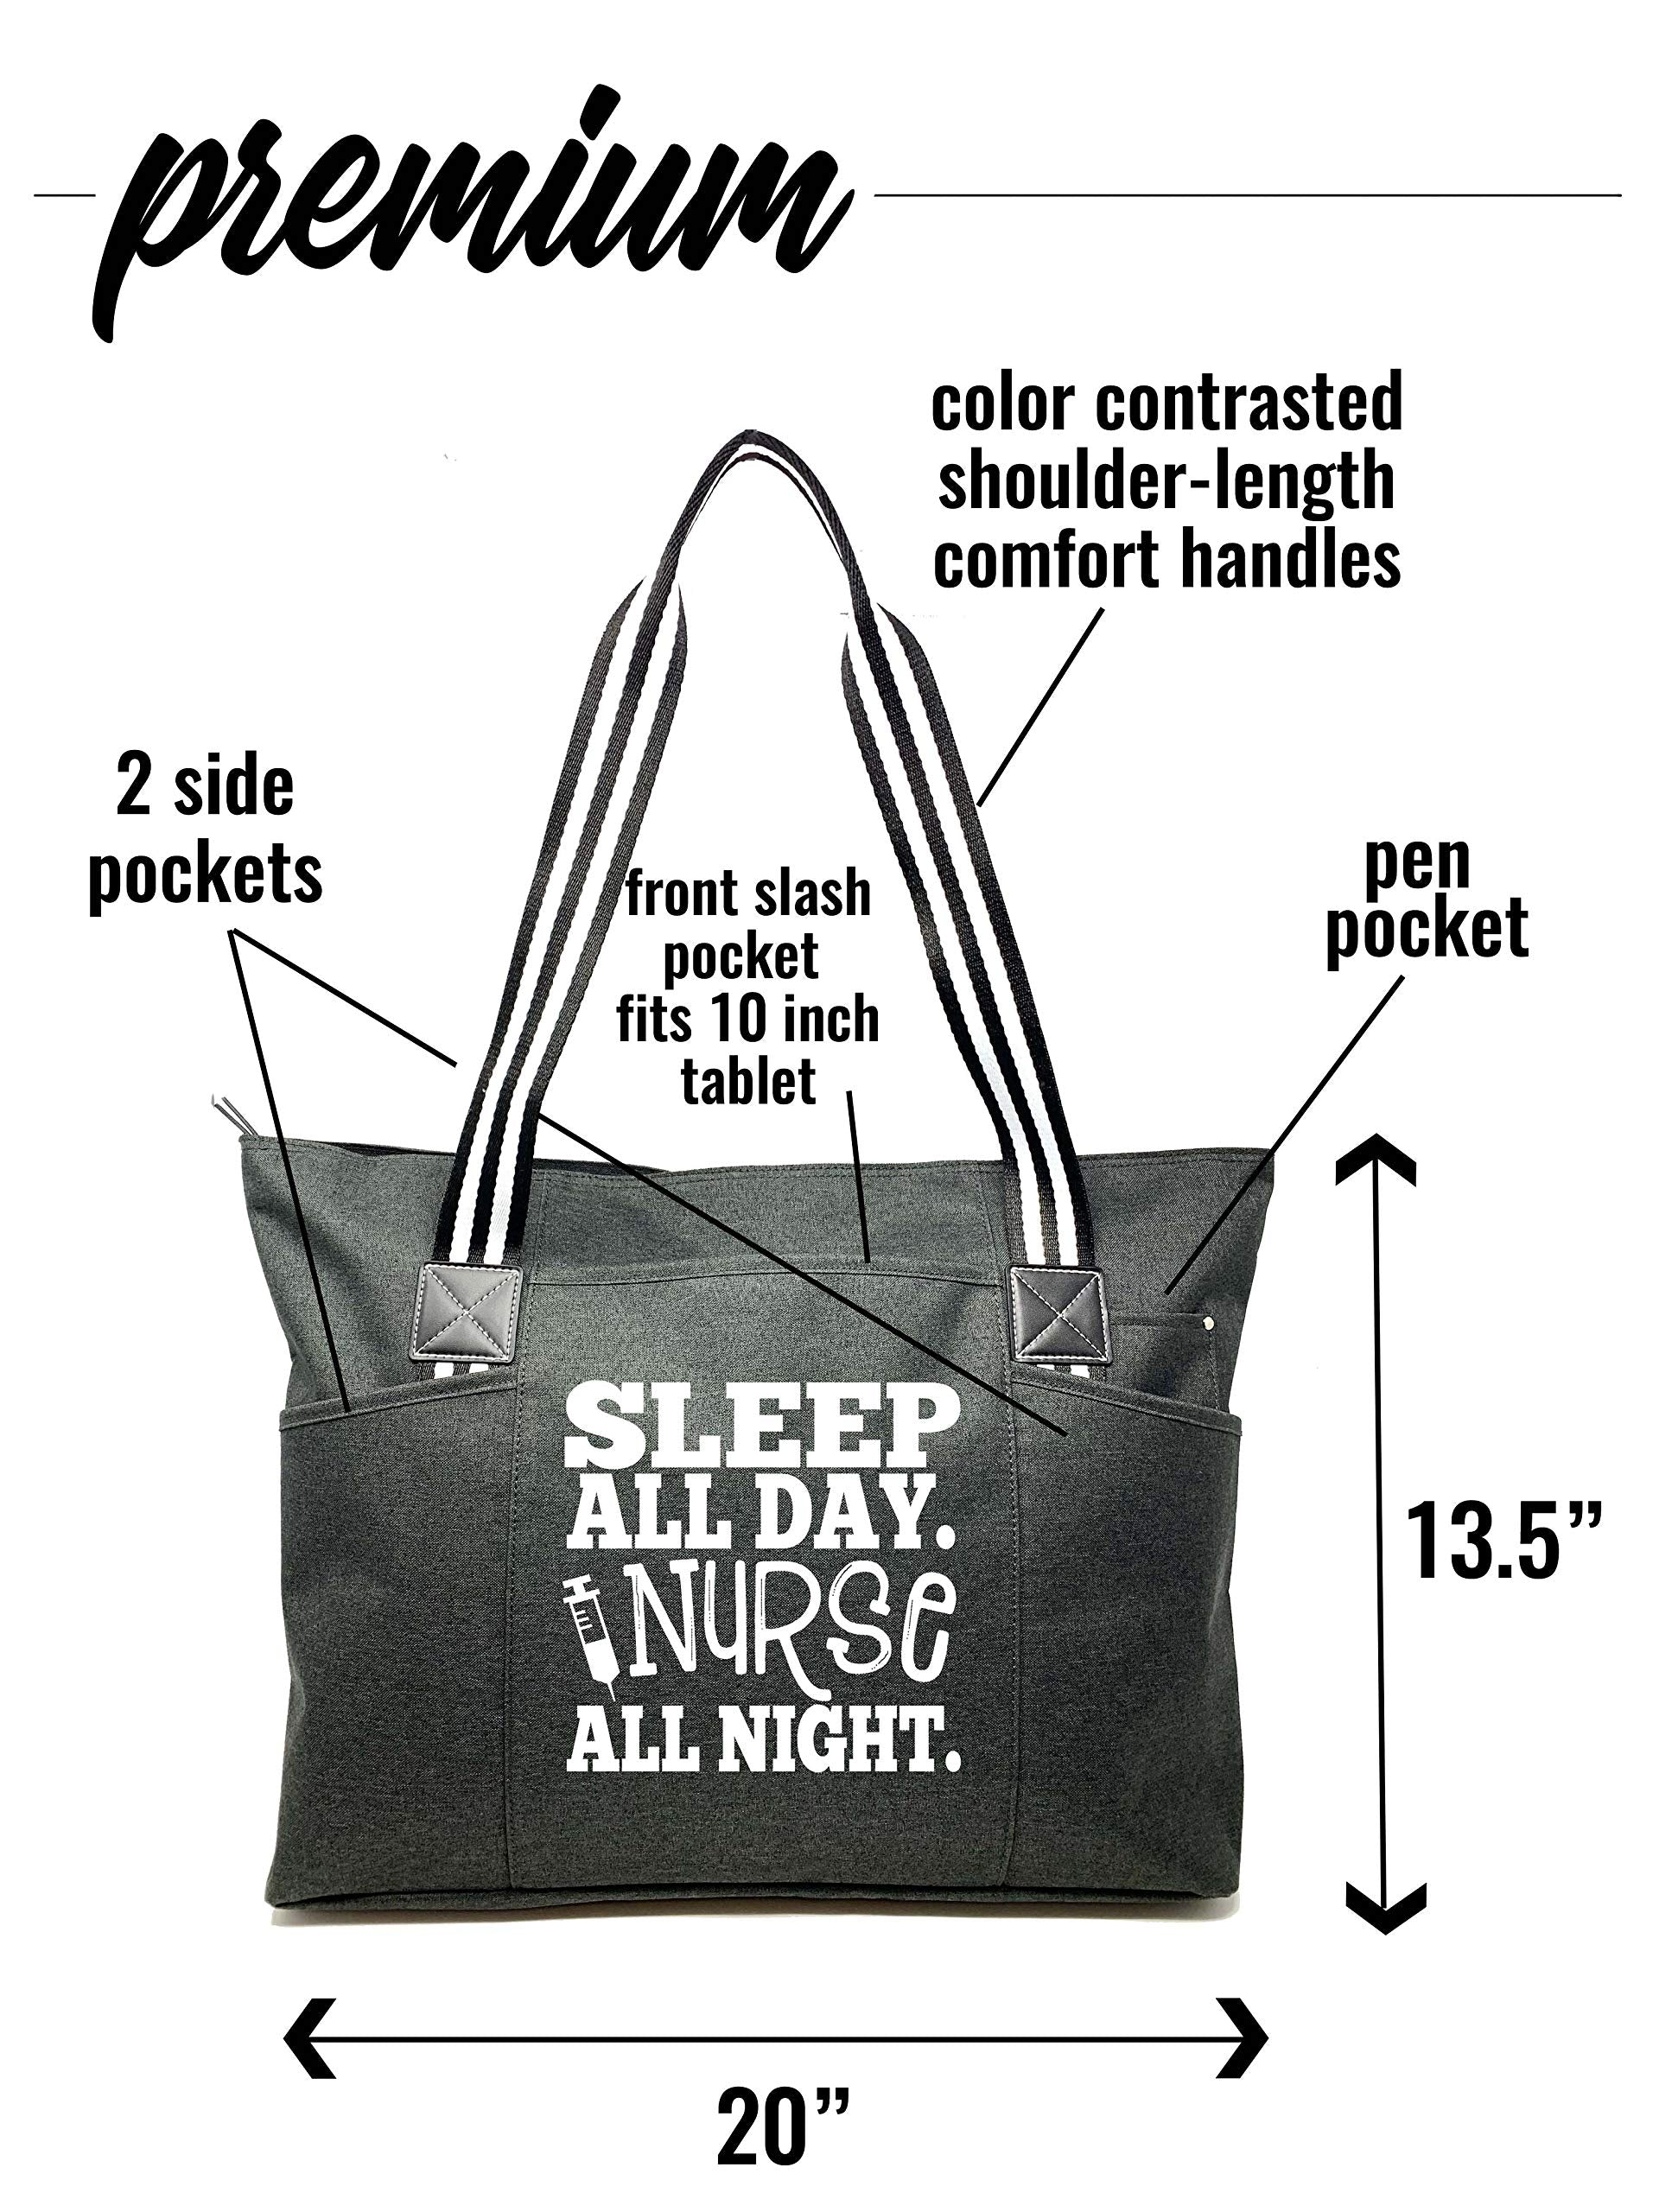 "Large Nursing""Premium"" Zippered Tote Bags with Pockets and Inside Lining for Nurses - Nurse All Night Black - Perfect for Work, Gifts for CNA, RN, Nursing Students - wiihuu"